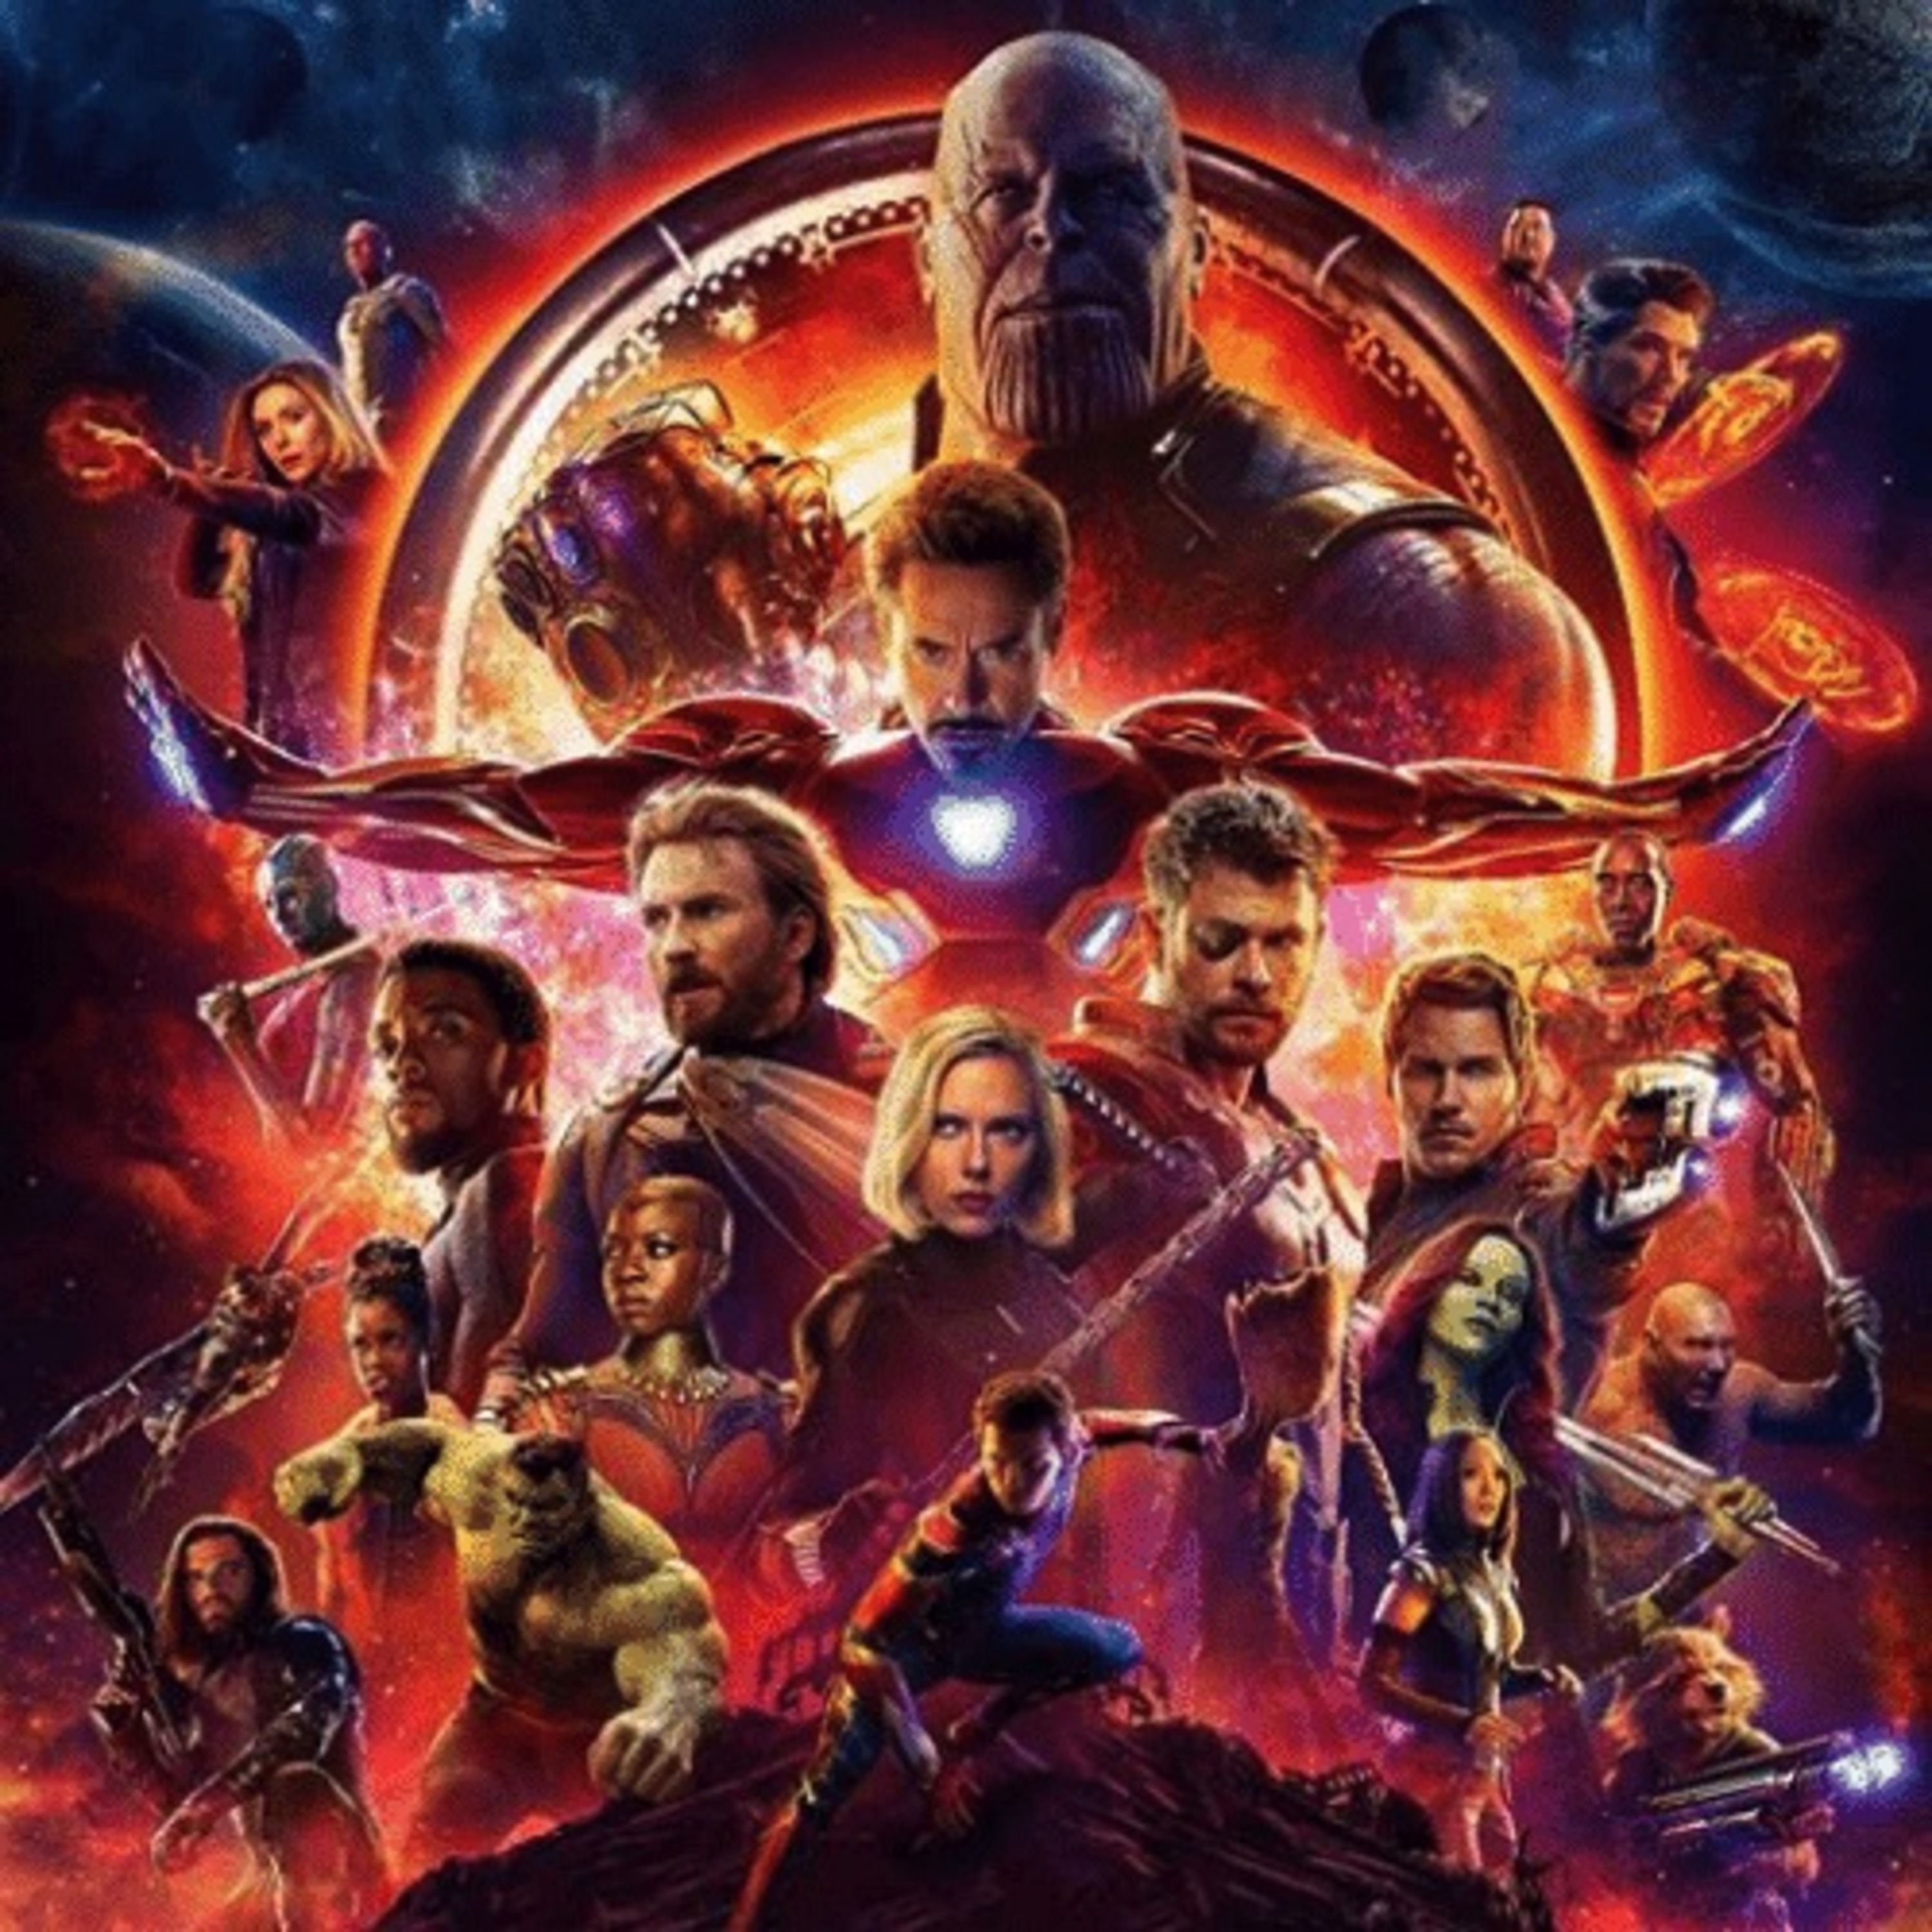 Avengers: Infinity War Review - The Little Indie Film That Could?